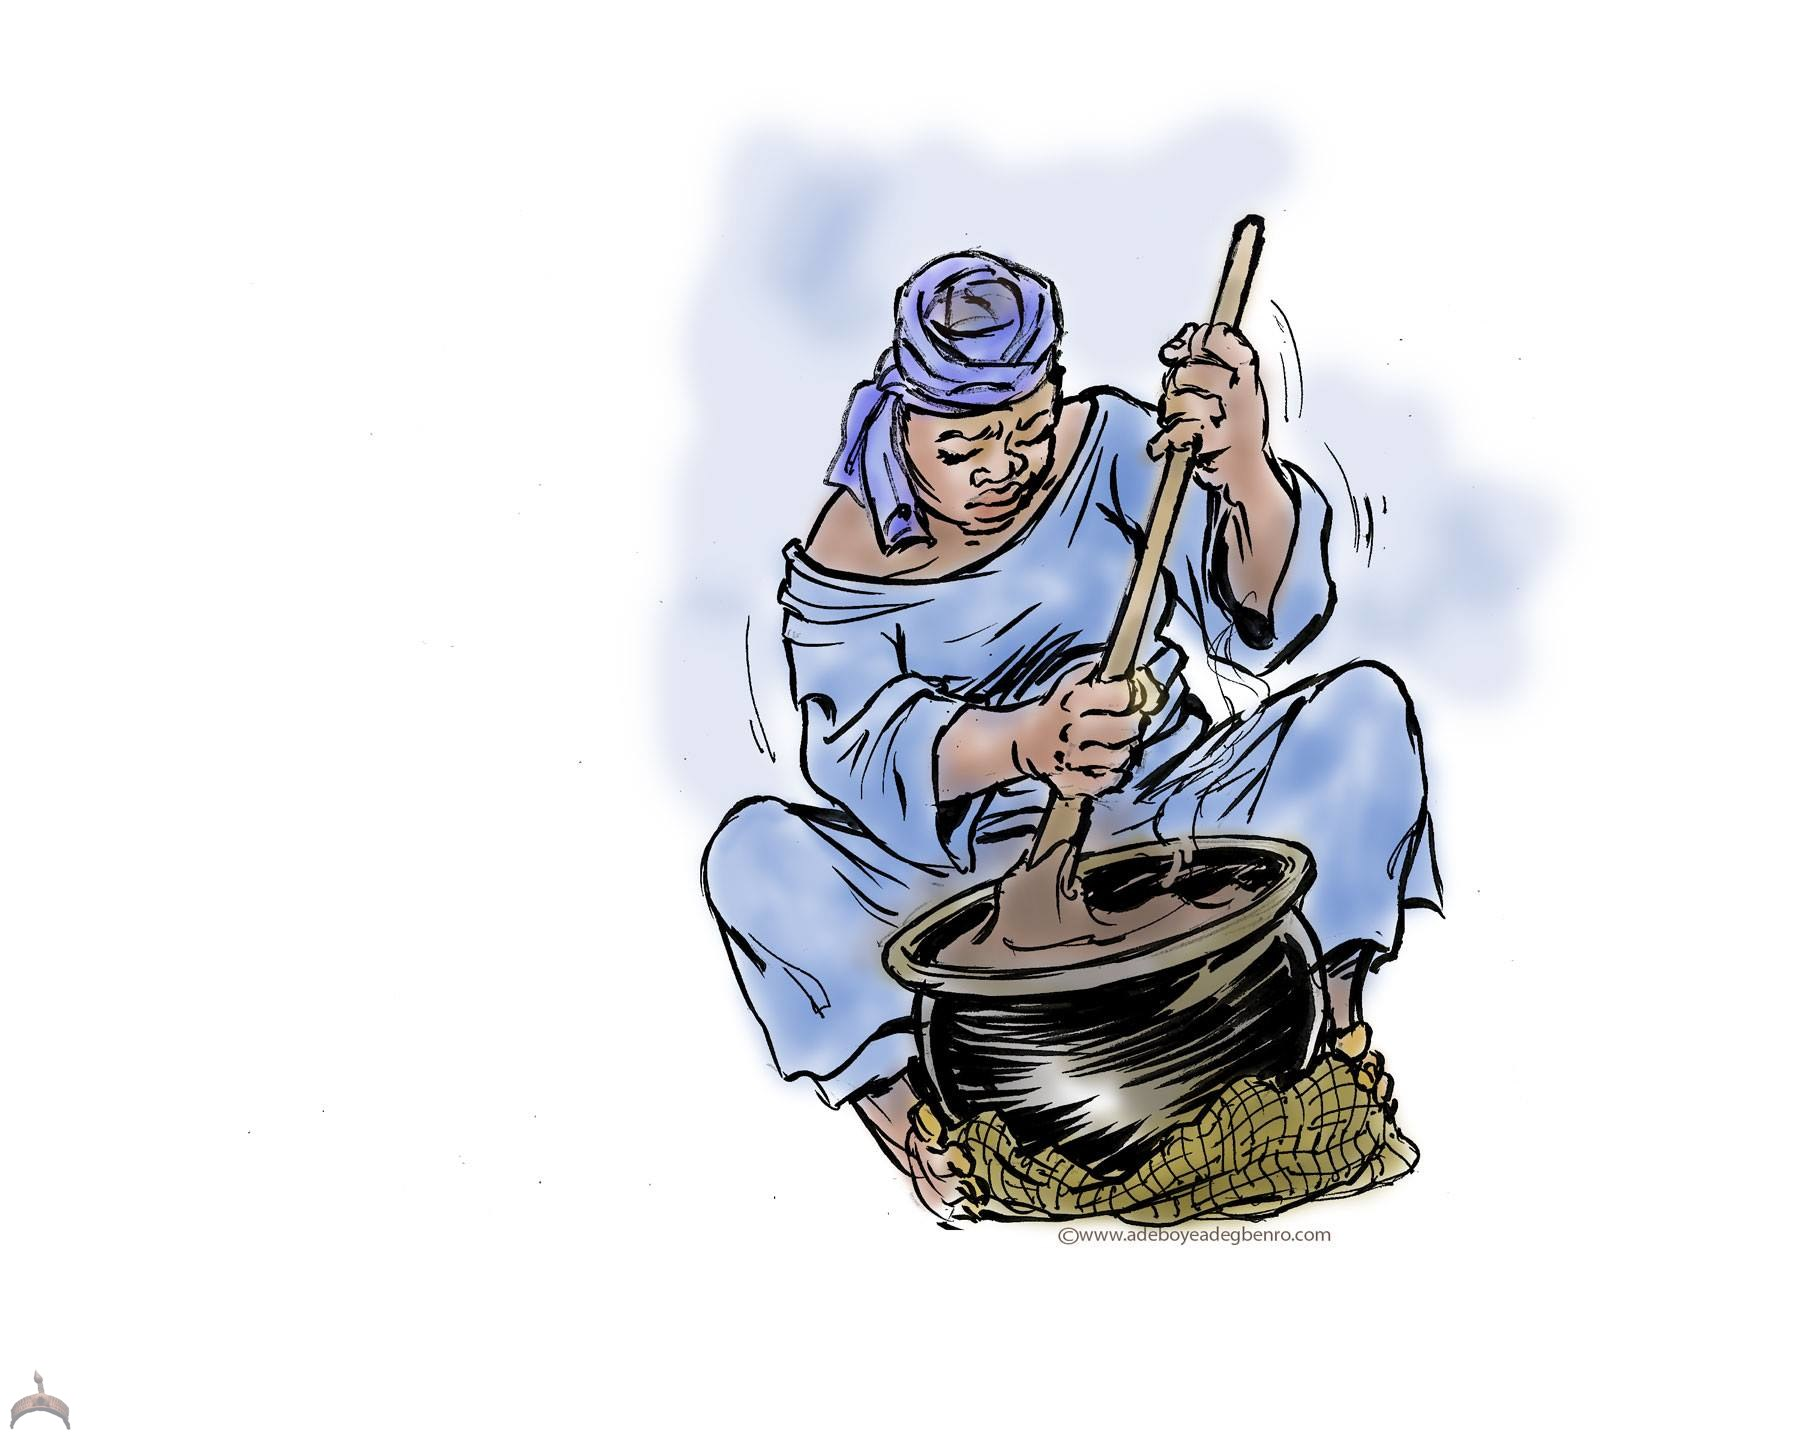 The Amala Maker at kọ́bítí © Adeboye Adegbenro